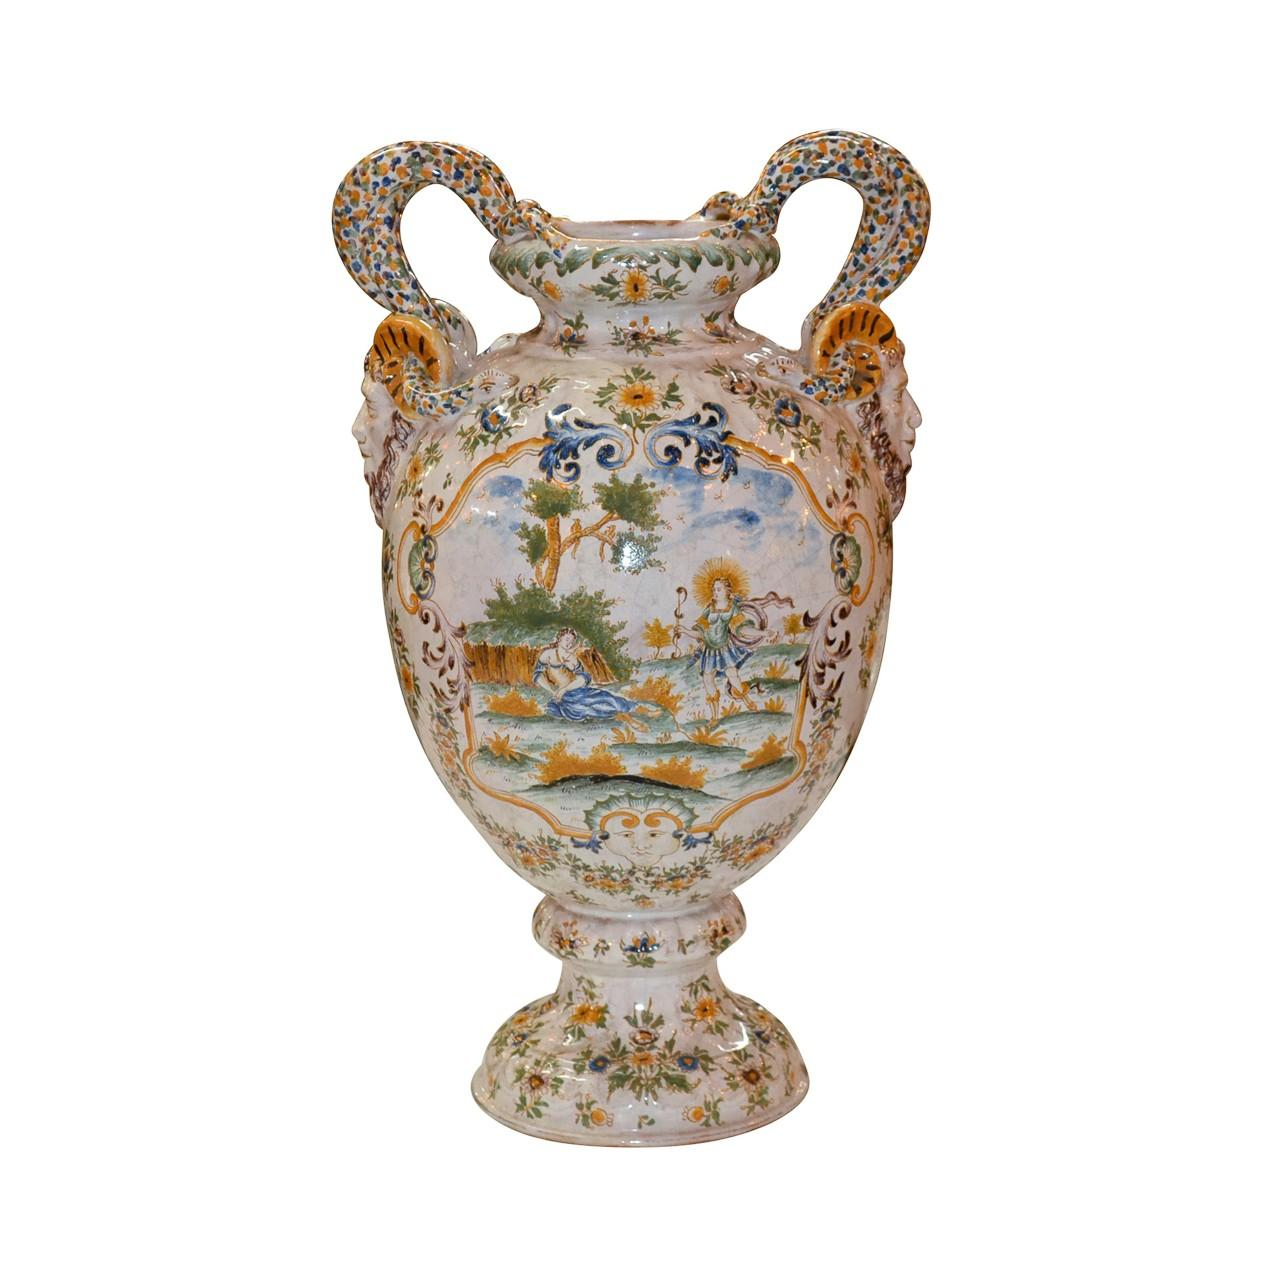 19th Century French Faience Vase